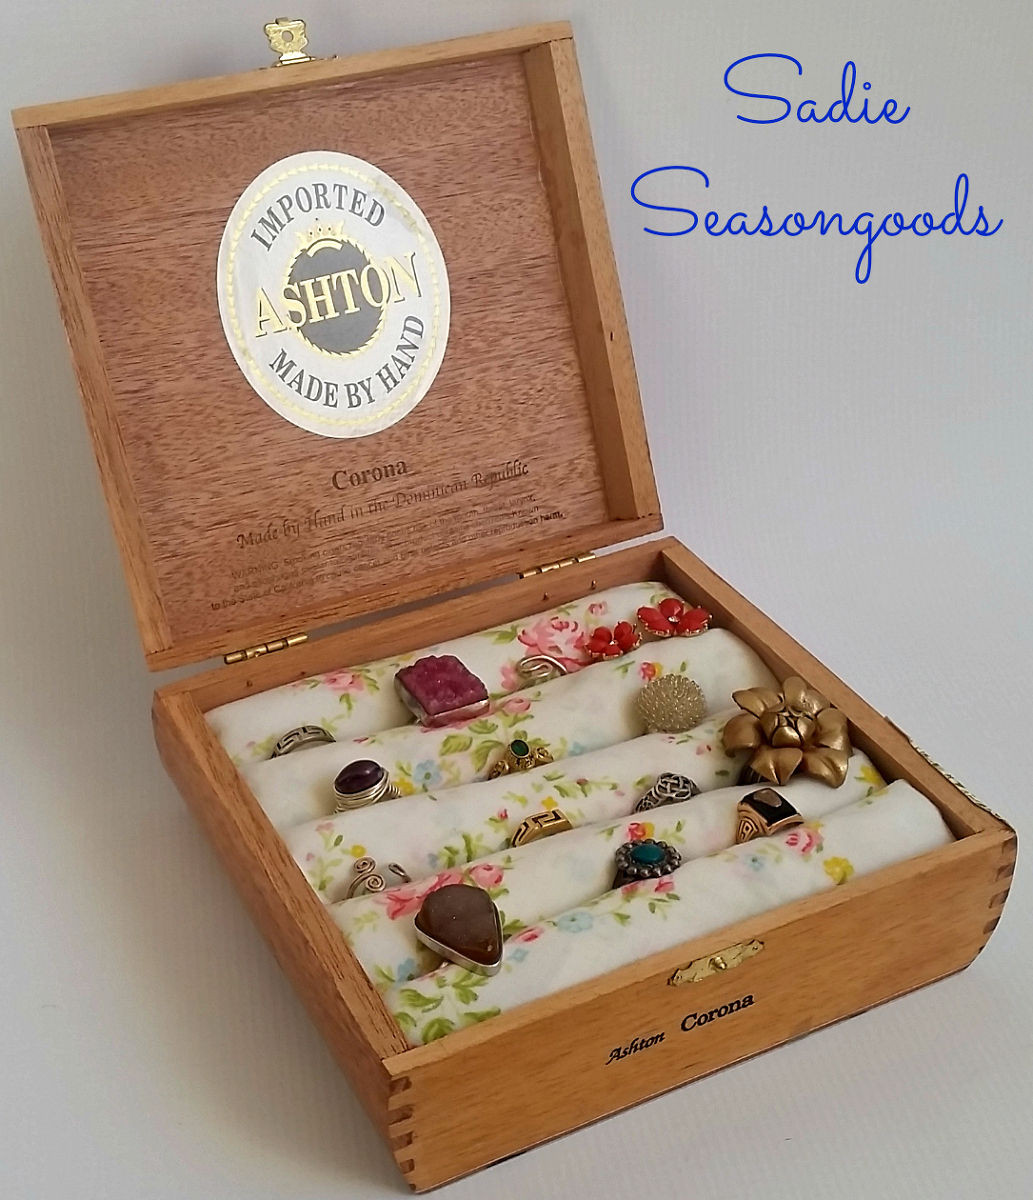 Best ideas about Cigar Box Craft Ideas . Save or Pin Hometalk Now.